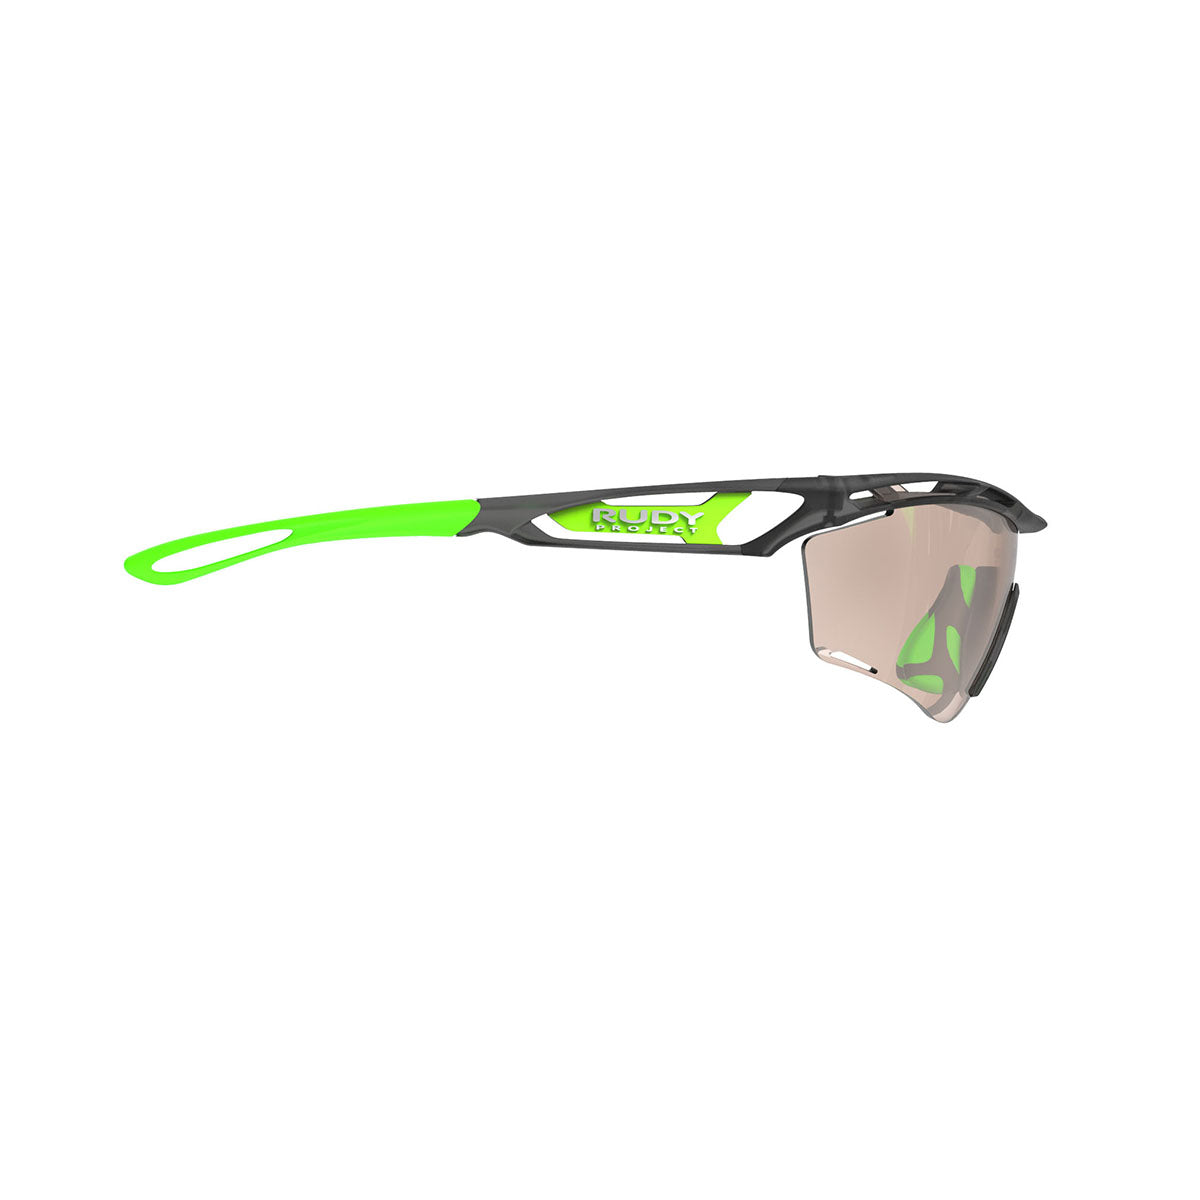 Rudy Project - Tralyx Golf - frame color: Matte Black - lens color: ImpactX-2 Photochromic Laser Purple - photo angle: Side Variant Hover Image